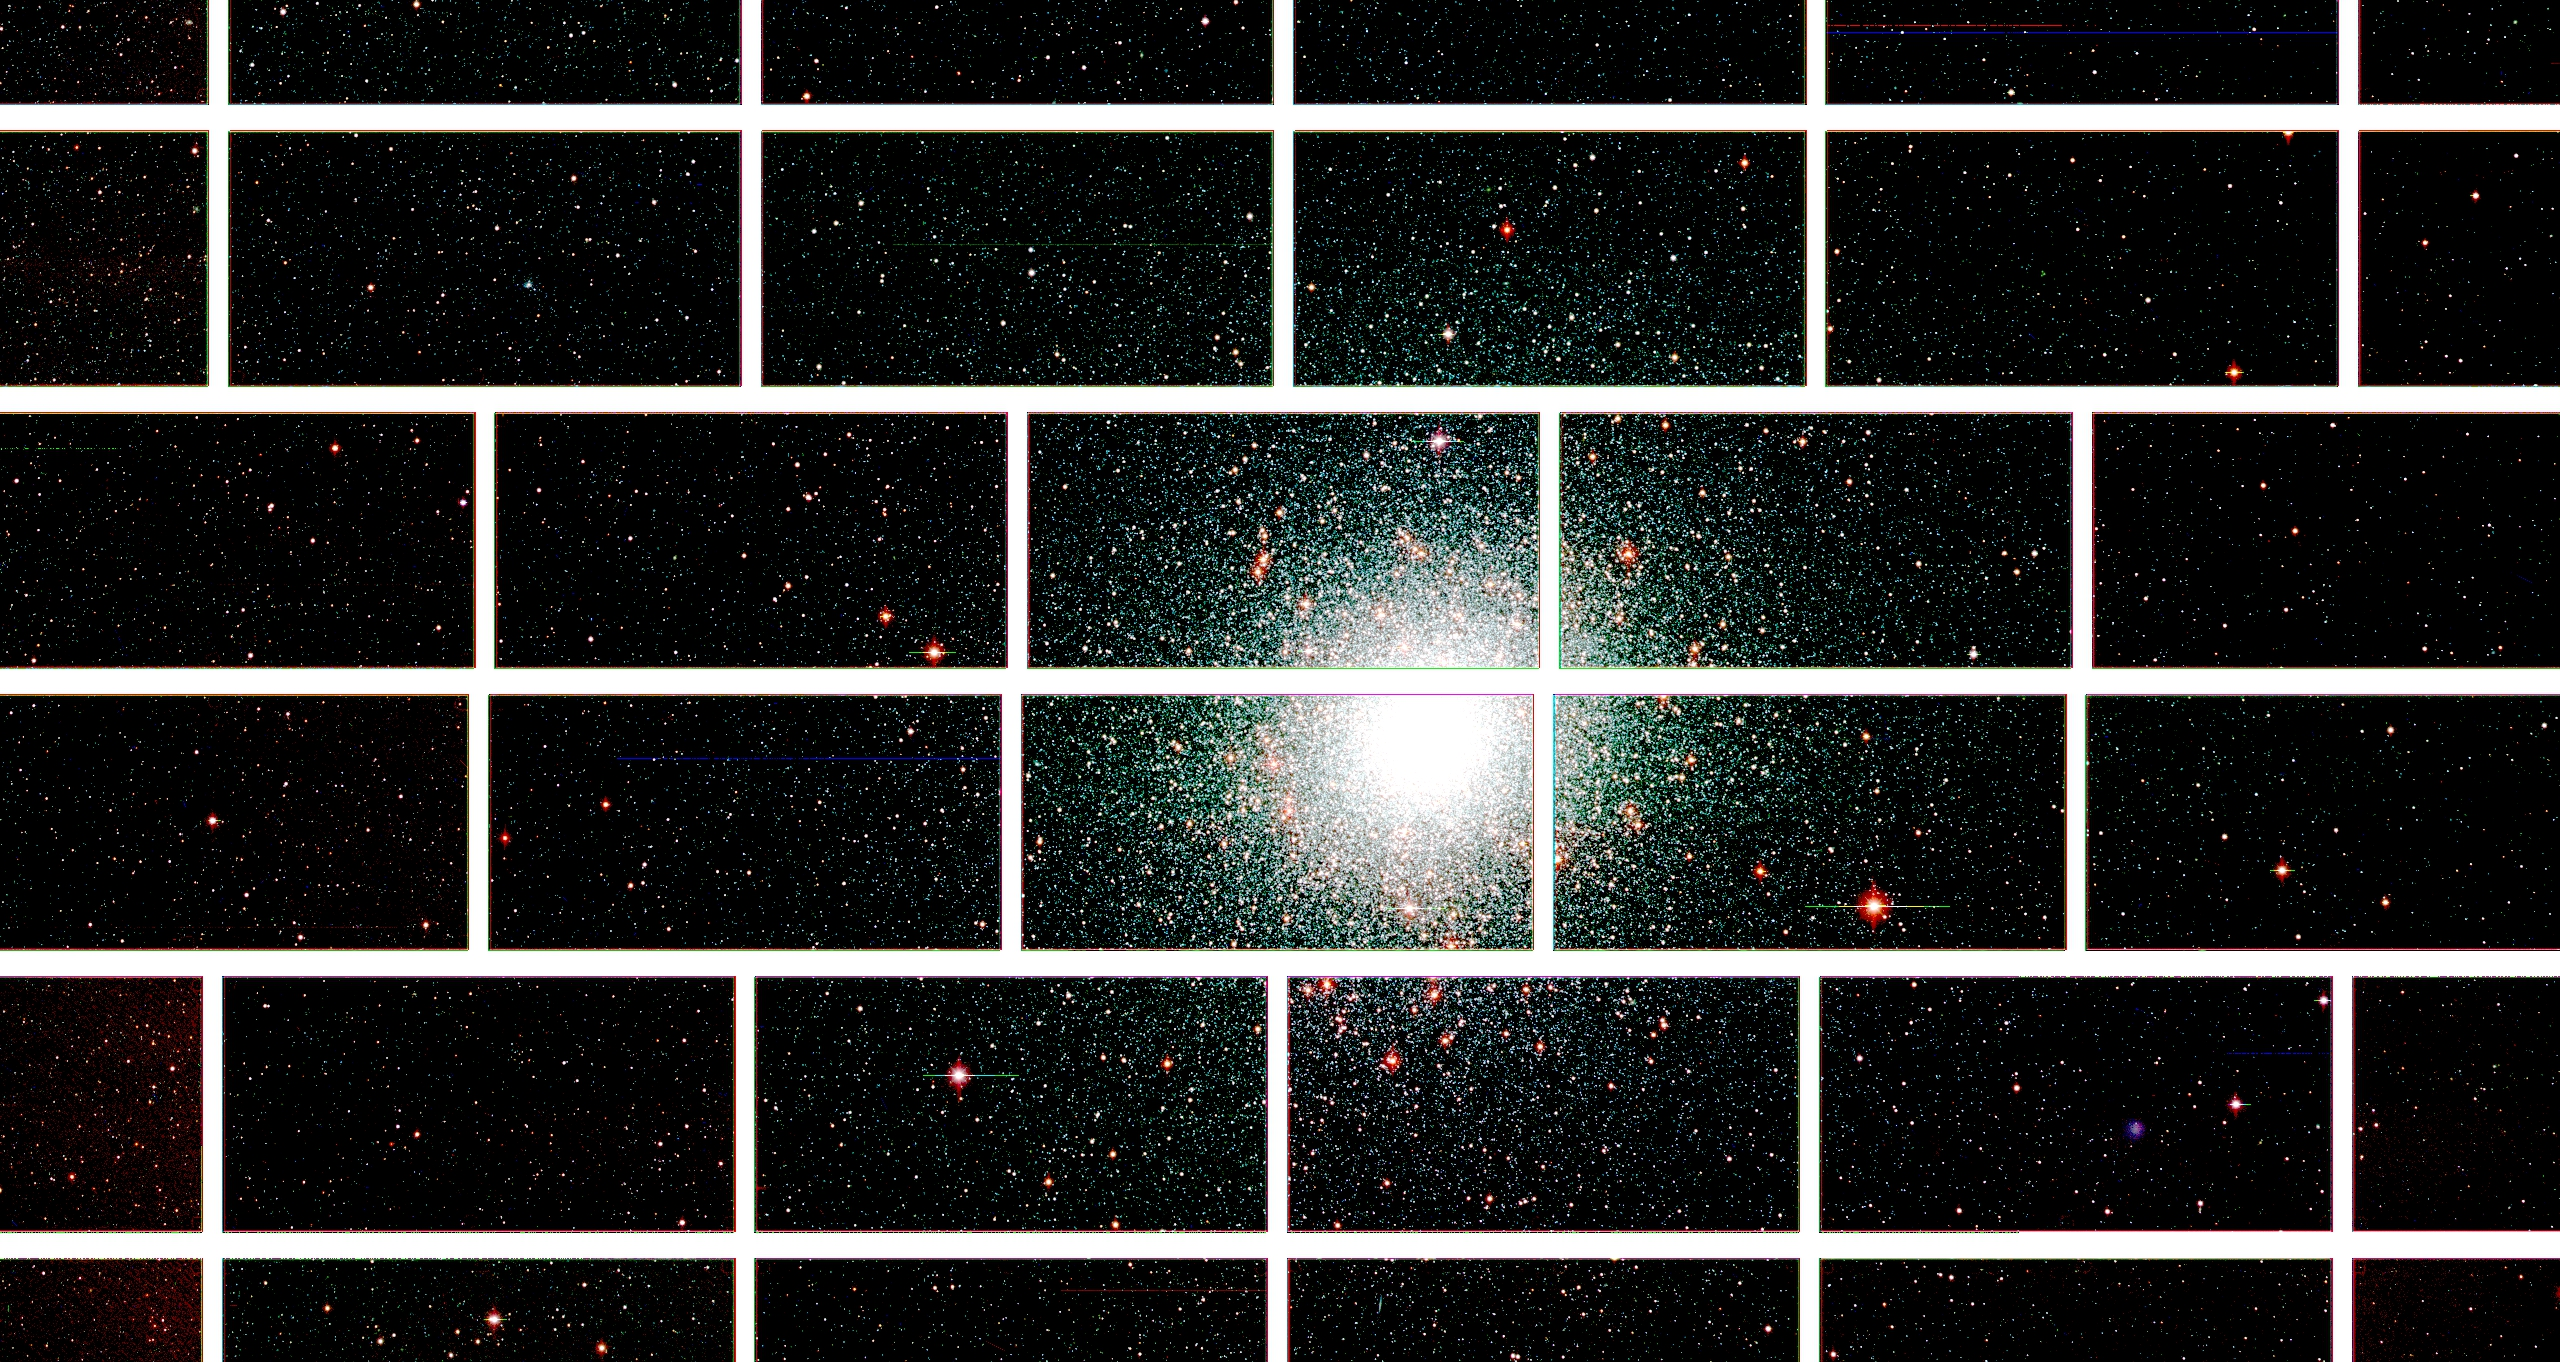 Zoomed-in image from the Dark Energy Camera of the center of the globular star cluster 47 Tucanae, which lies about 17,000 light years from Earth. Image credit: Dark Energy Survey Collaboration